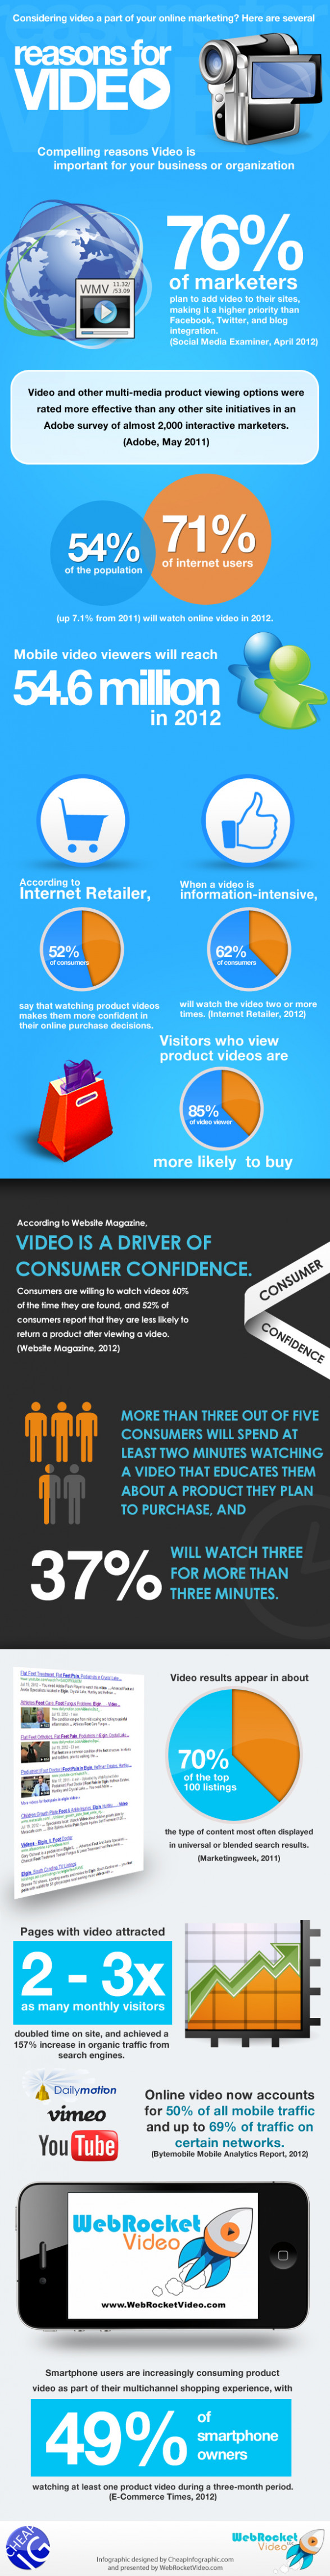 Compelling Reasons for Adding Video to Your Website